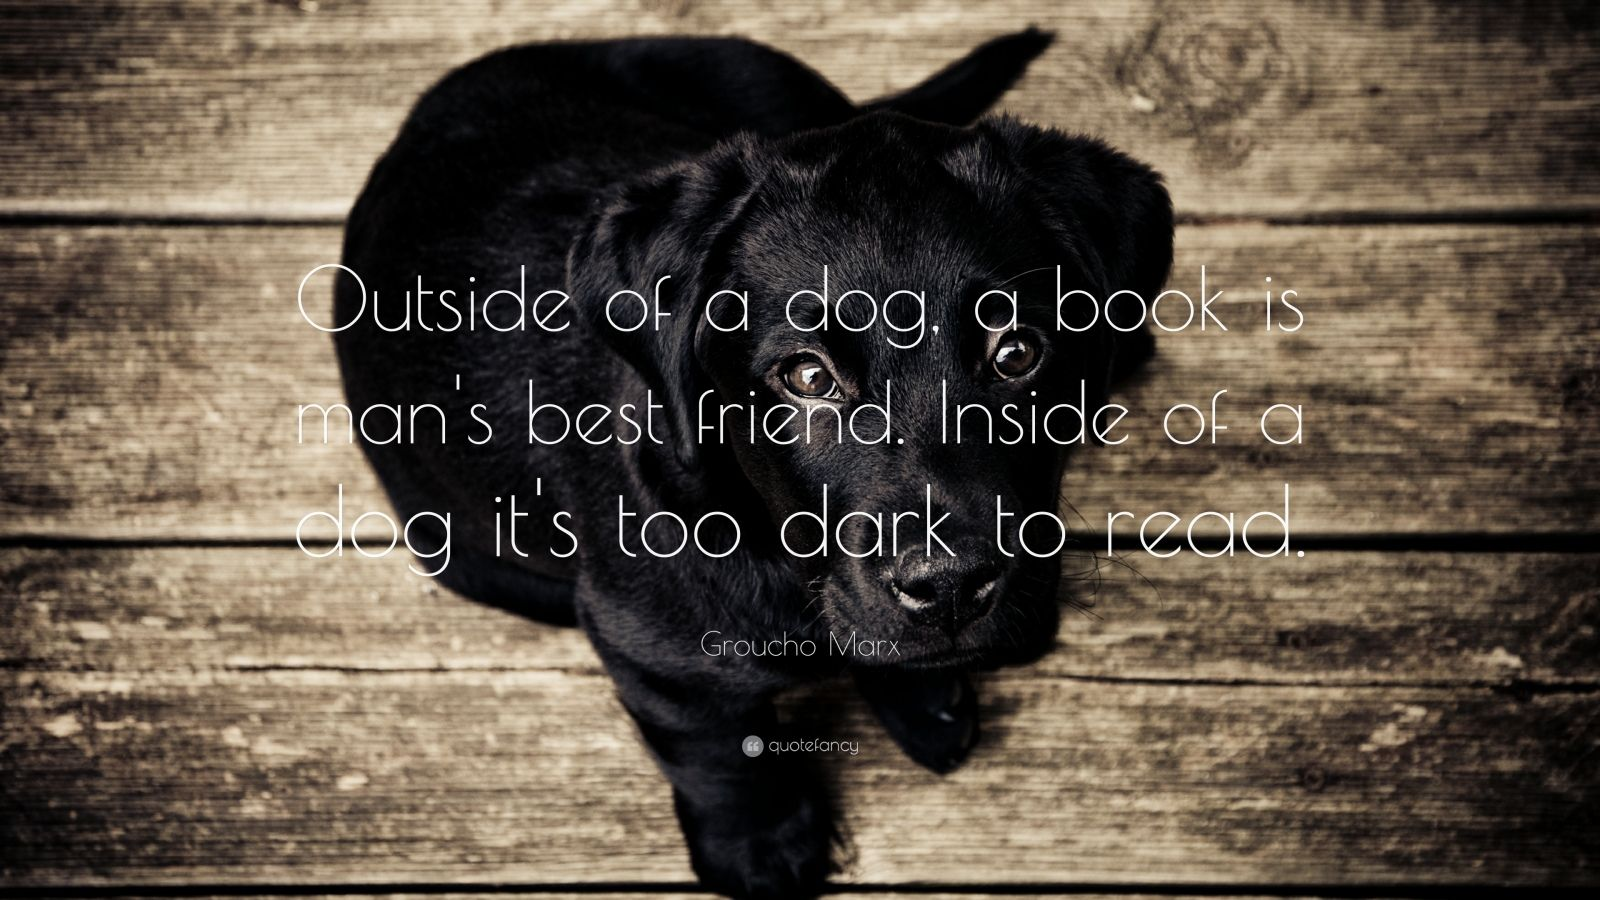 Groucho Marx Quote: Outside of a dog, a book is man's